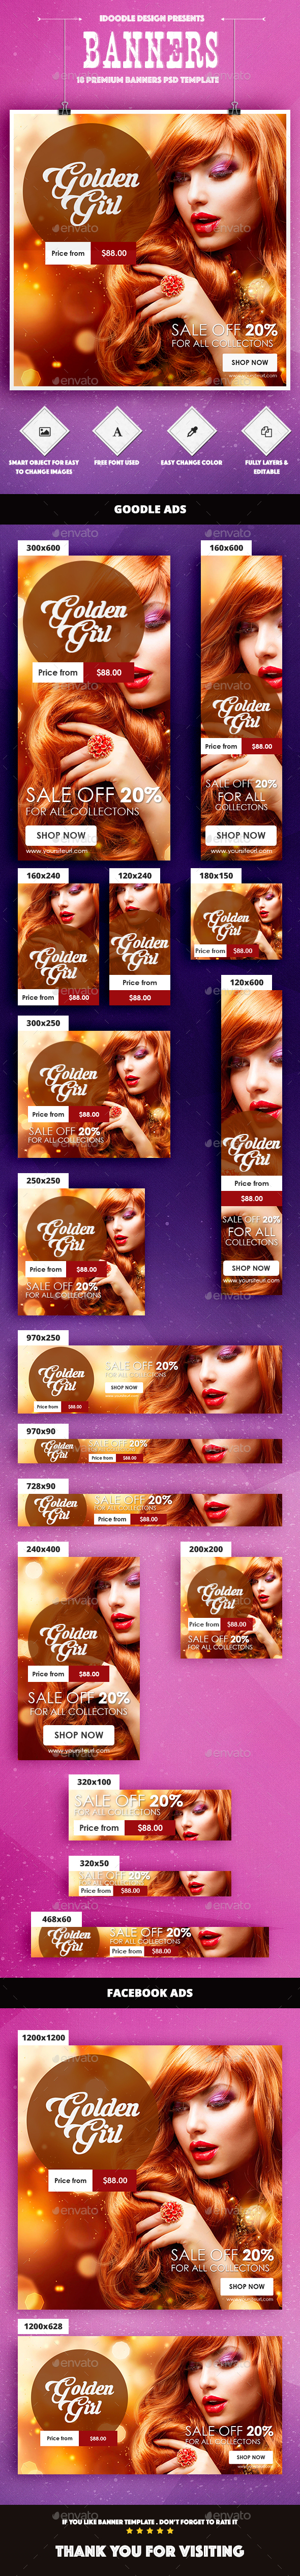 Fashion Banner Ad - Banners & Ads Web Elements